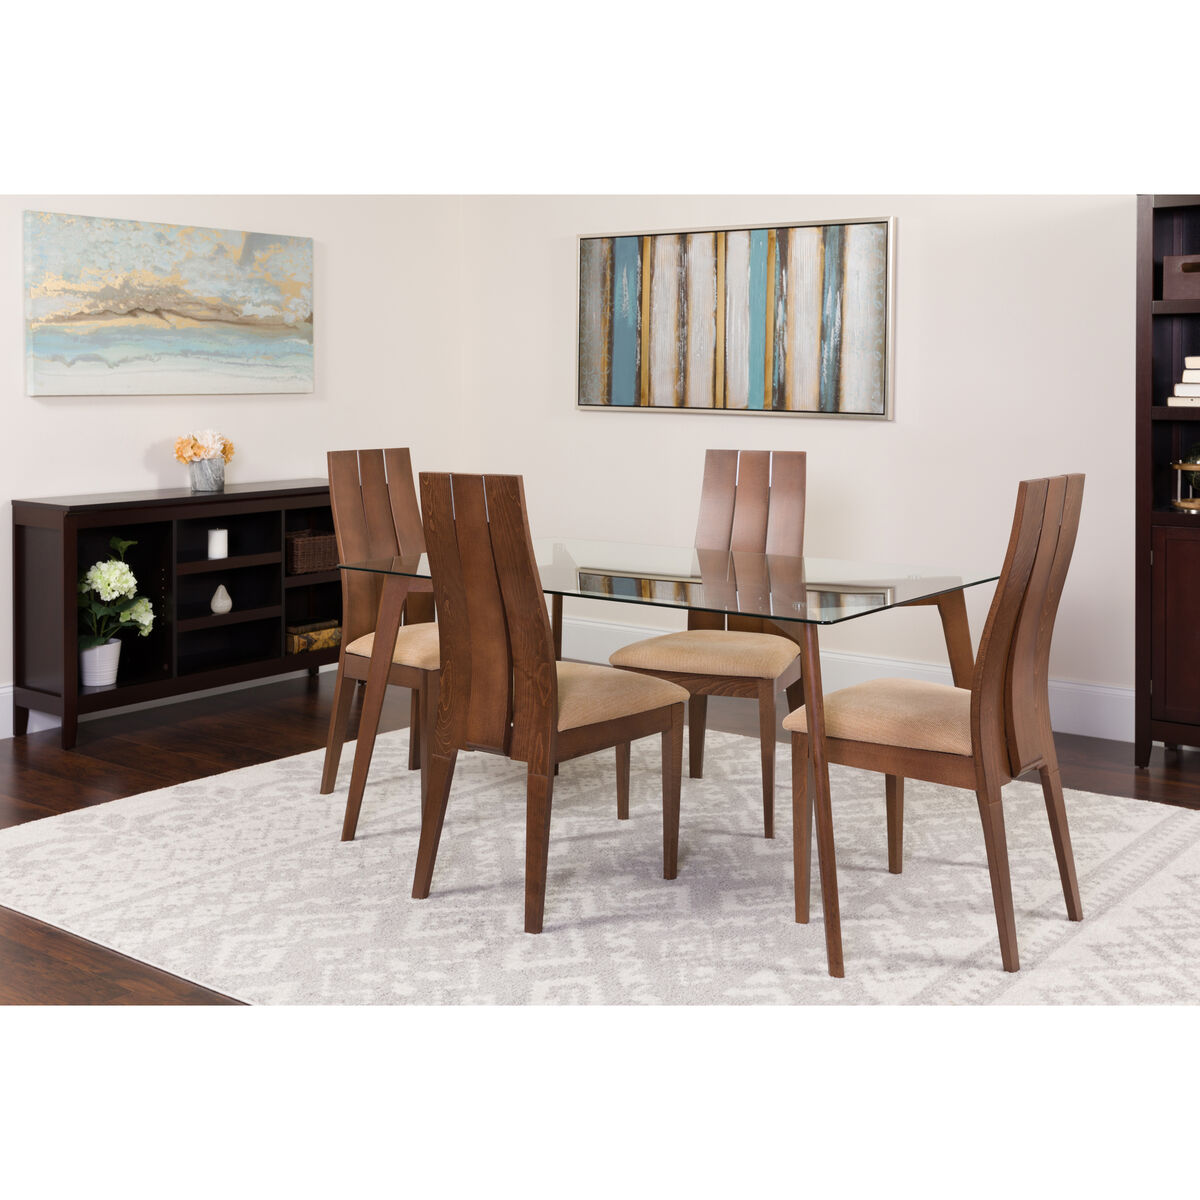 Our hawthorne 5 piece walnut wood dining table set with glass top and wide slat back